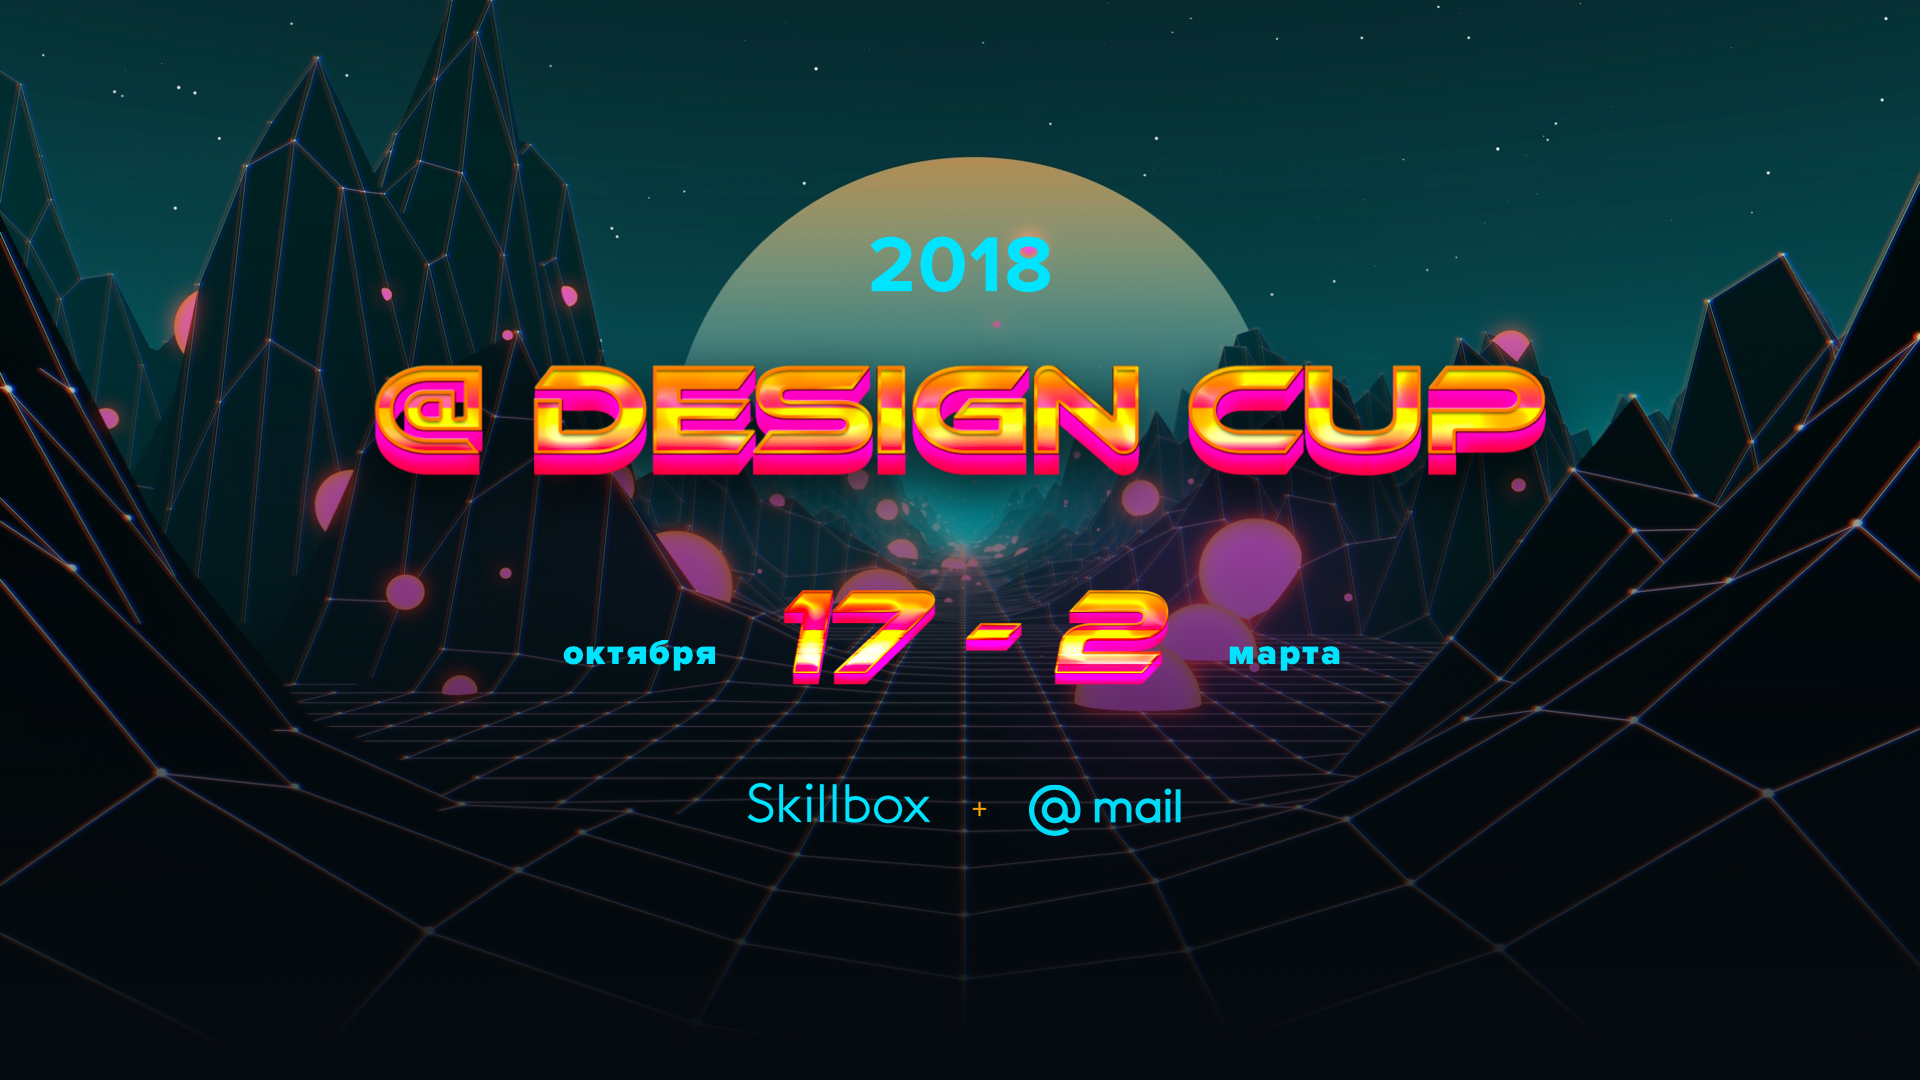 Mail Design Cup 2018 - Competition for interface designers